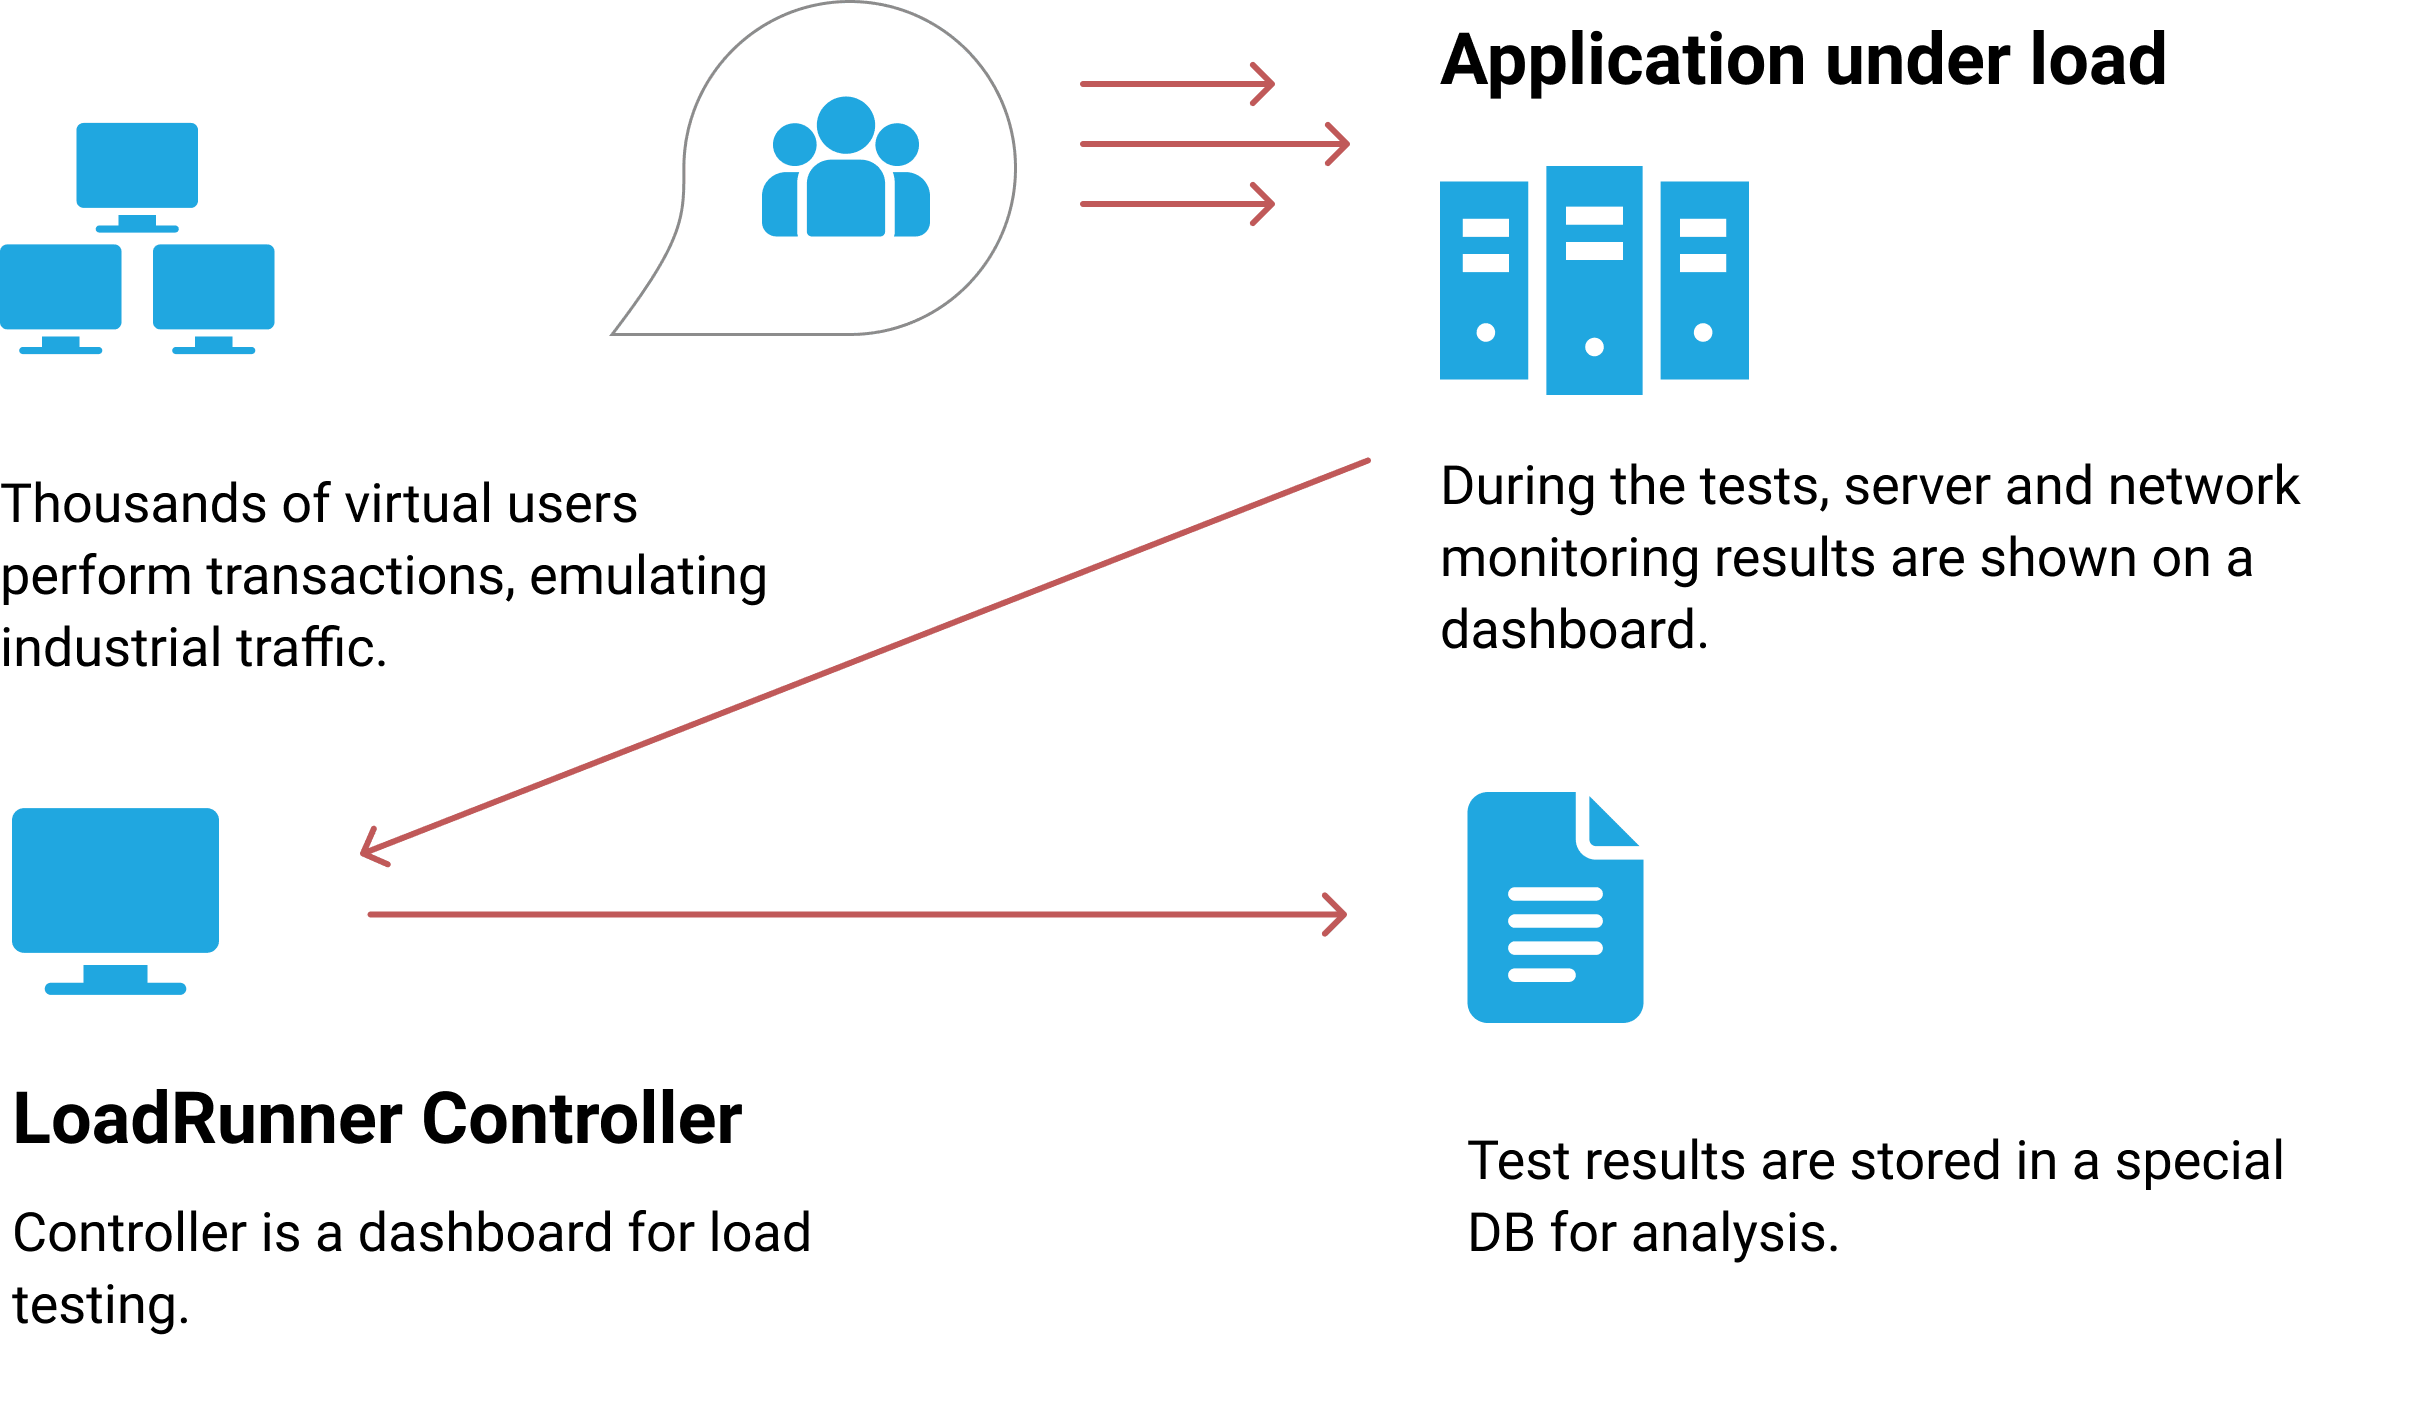 LoadRunner emulates thousands of user interactions with the tested system.